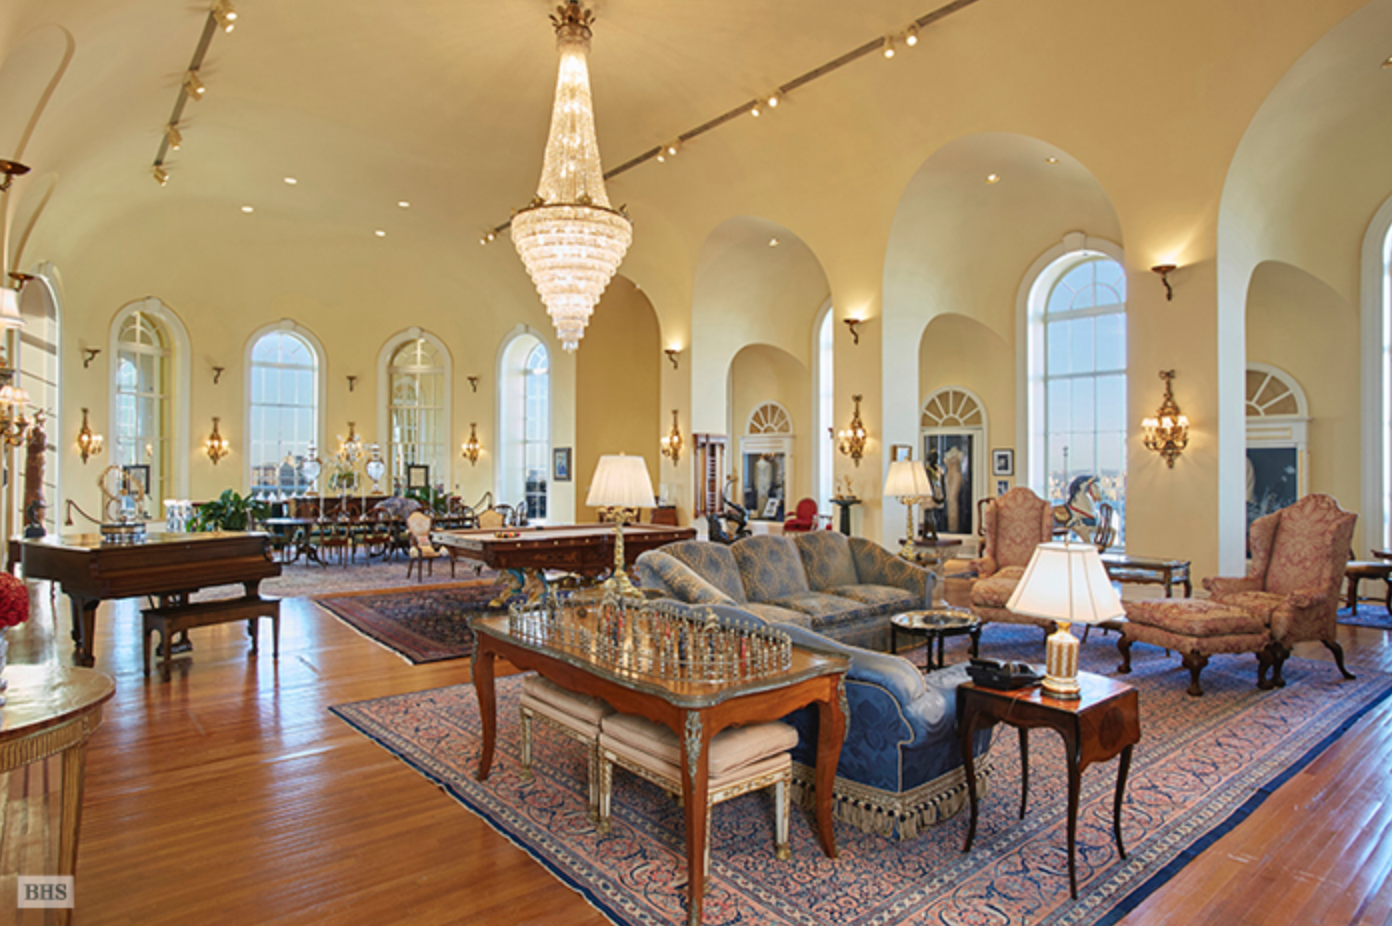 The home's ballroom boasts 23-foot-ceilings, arched window areas and elaborate chandeliers.